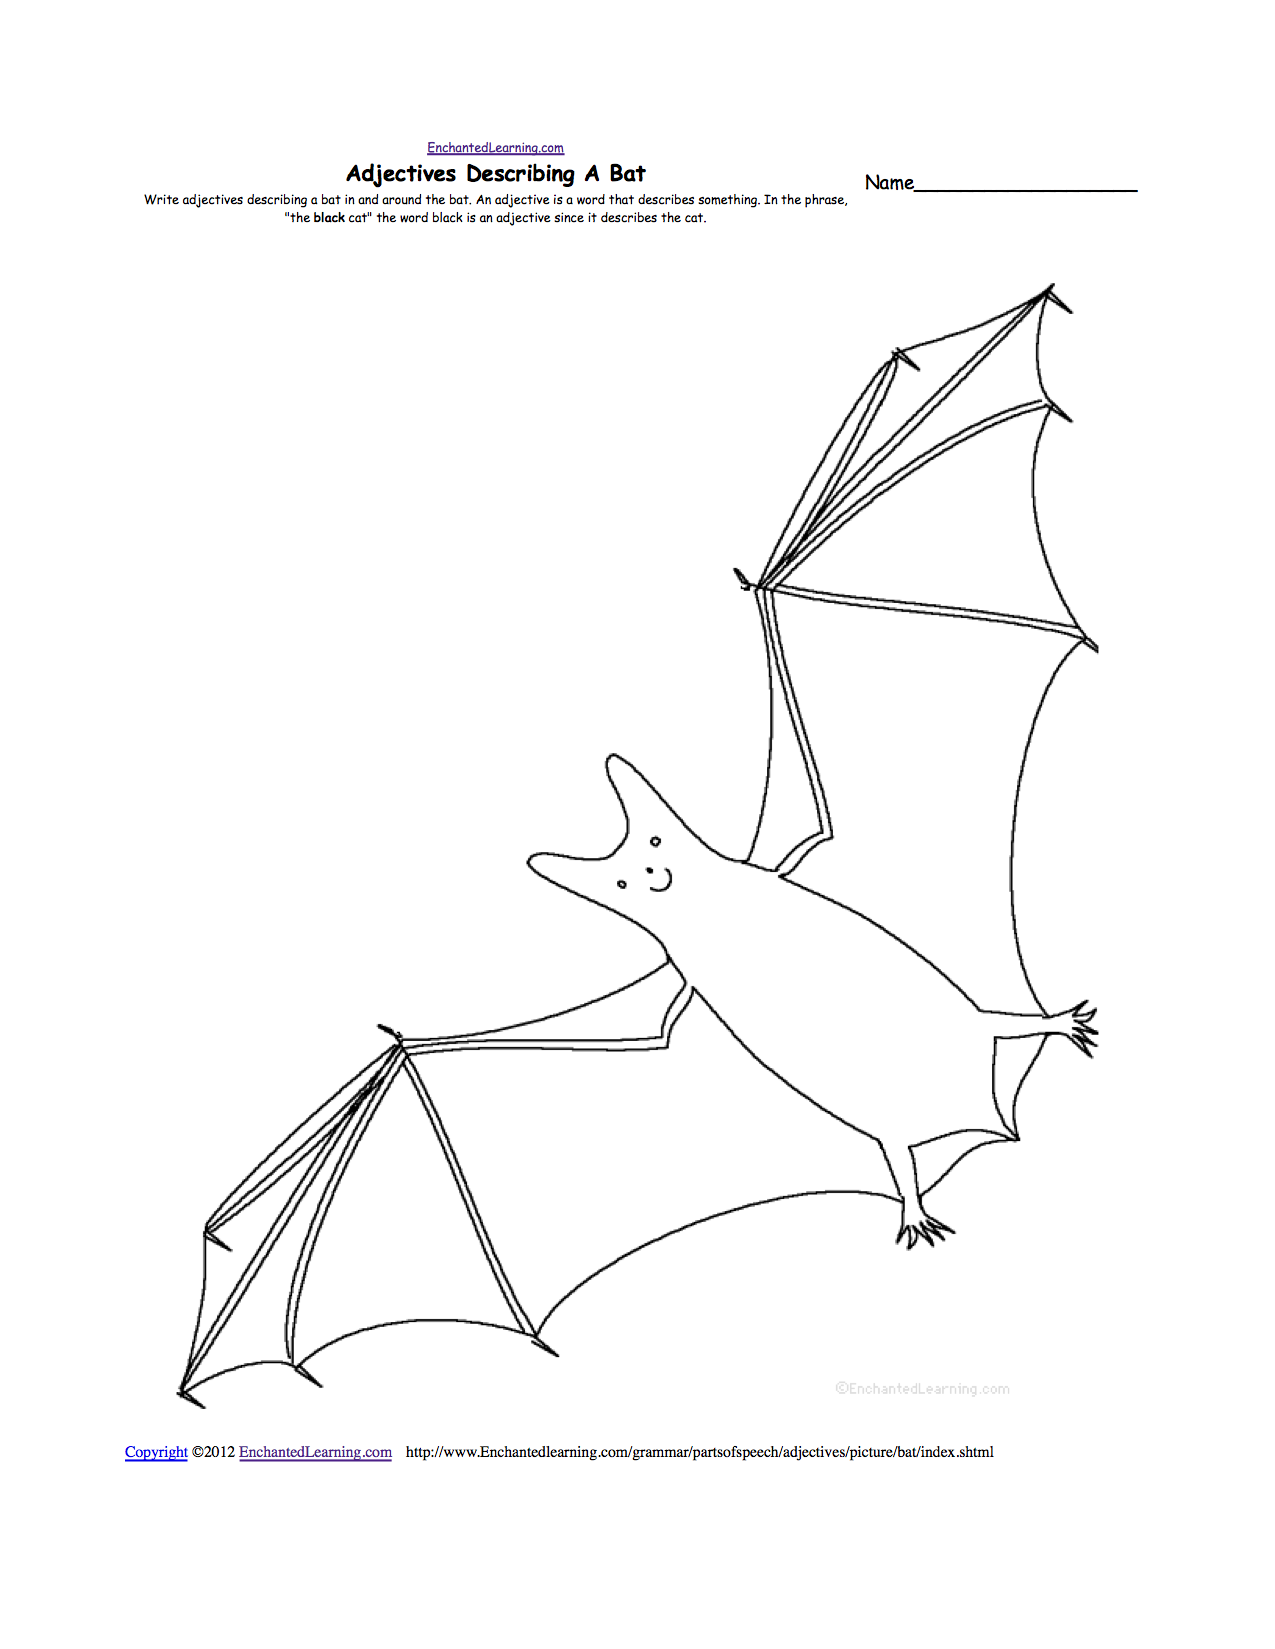 Uncategorized Bat Math Worksheets bats at enchantedlearning com adjectives describing a bat